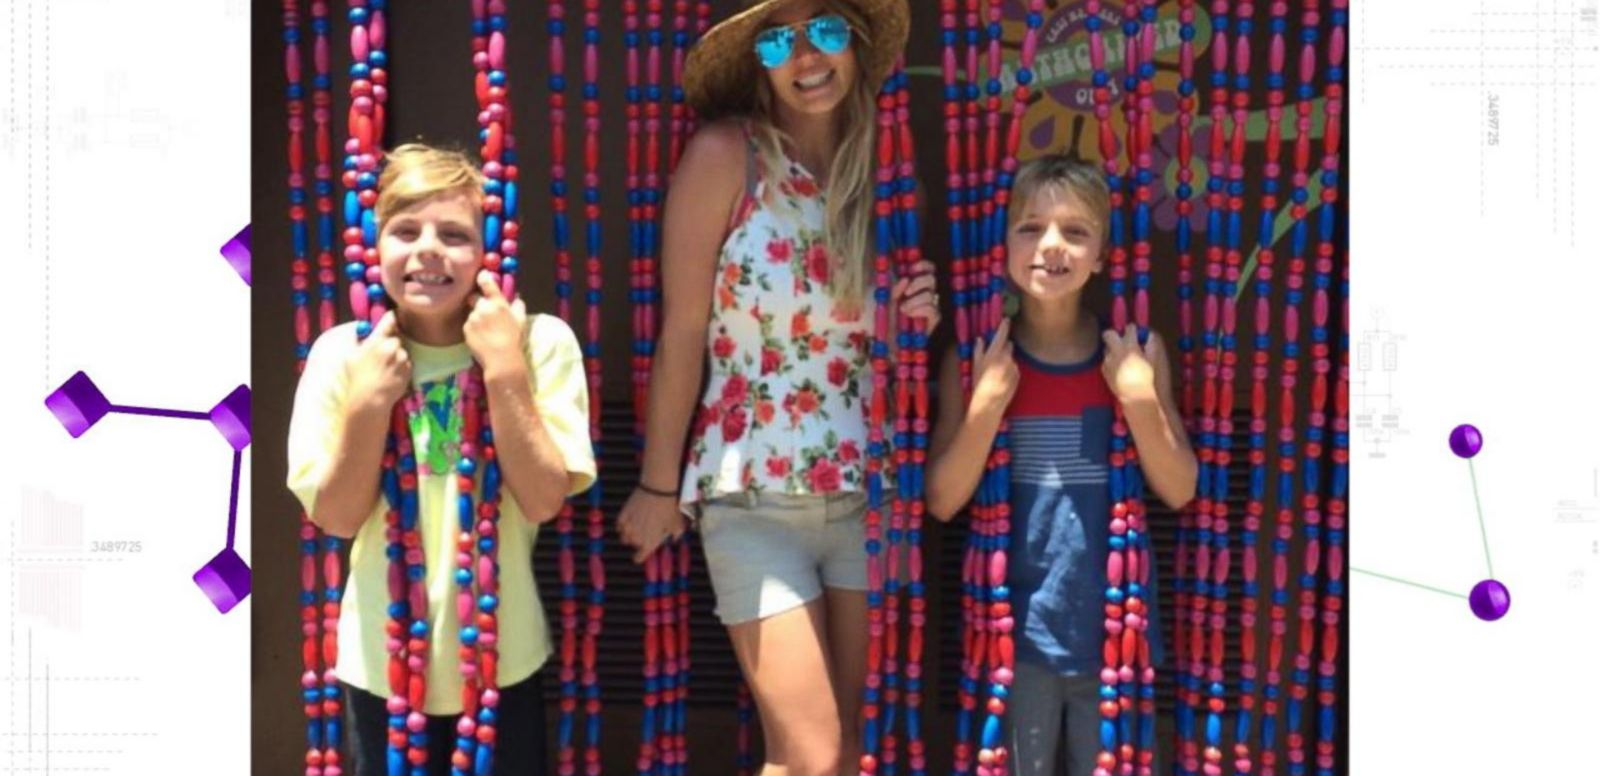 VIDEO: Britney Spears Recreates 'Oops! ... I Did It Again' Cover With Sons at Disneyland